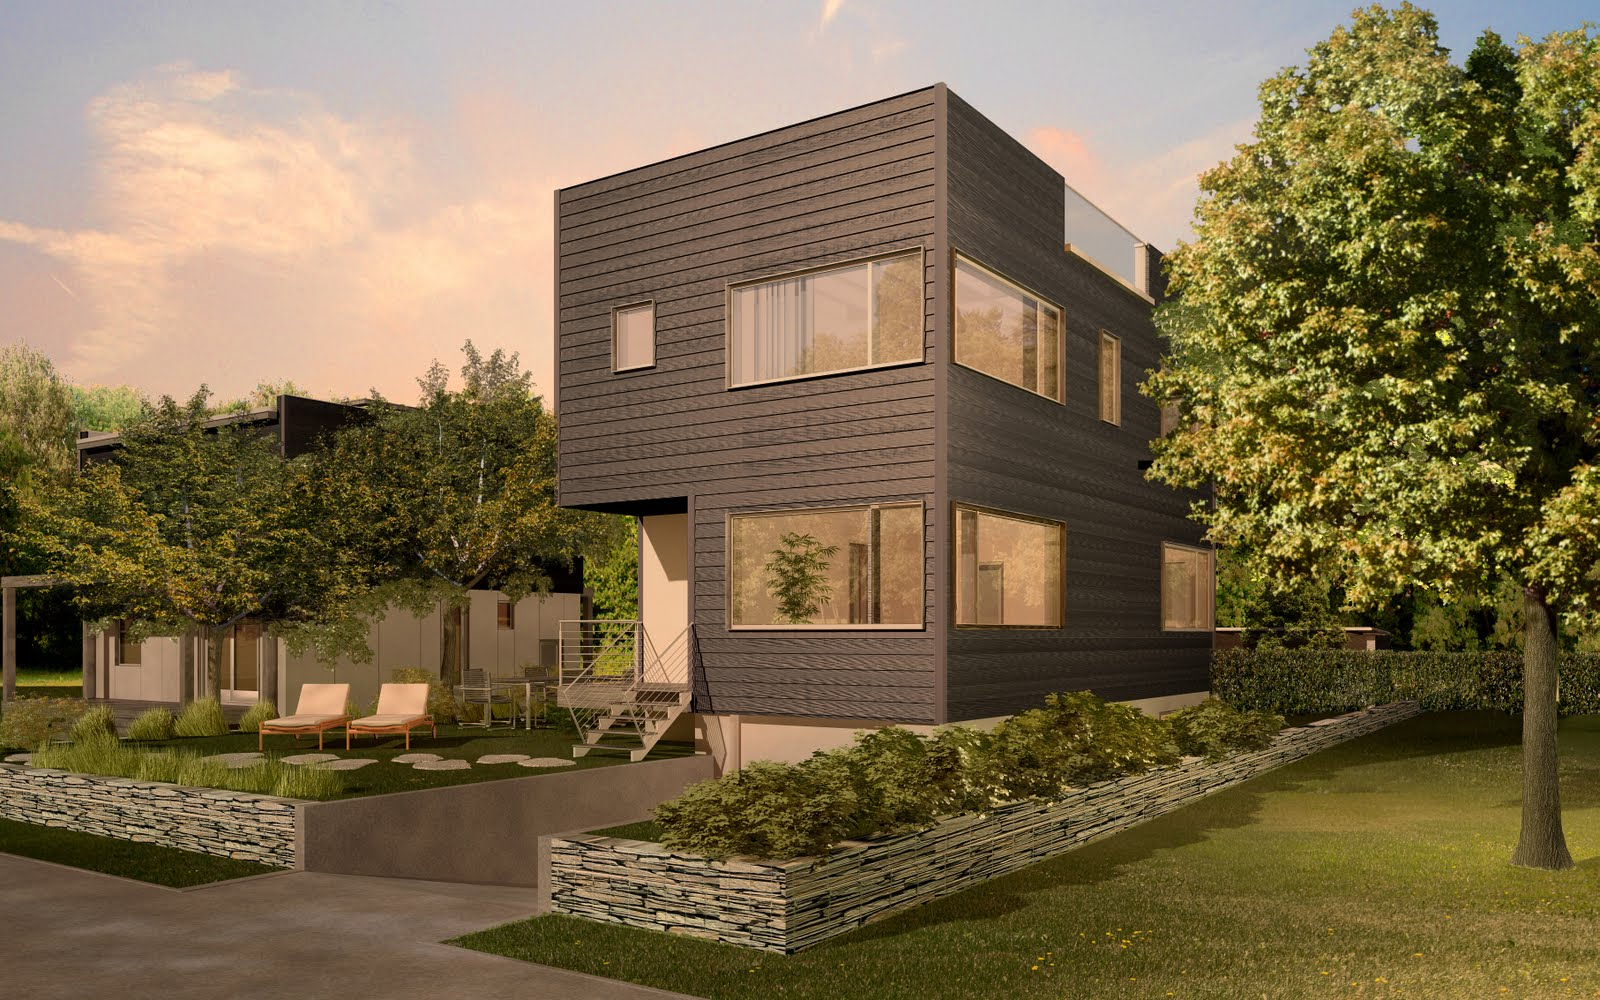 Urban Real Estate Modular Green Homes Are Coming To Seattle